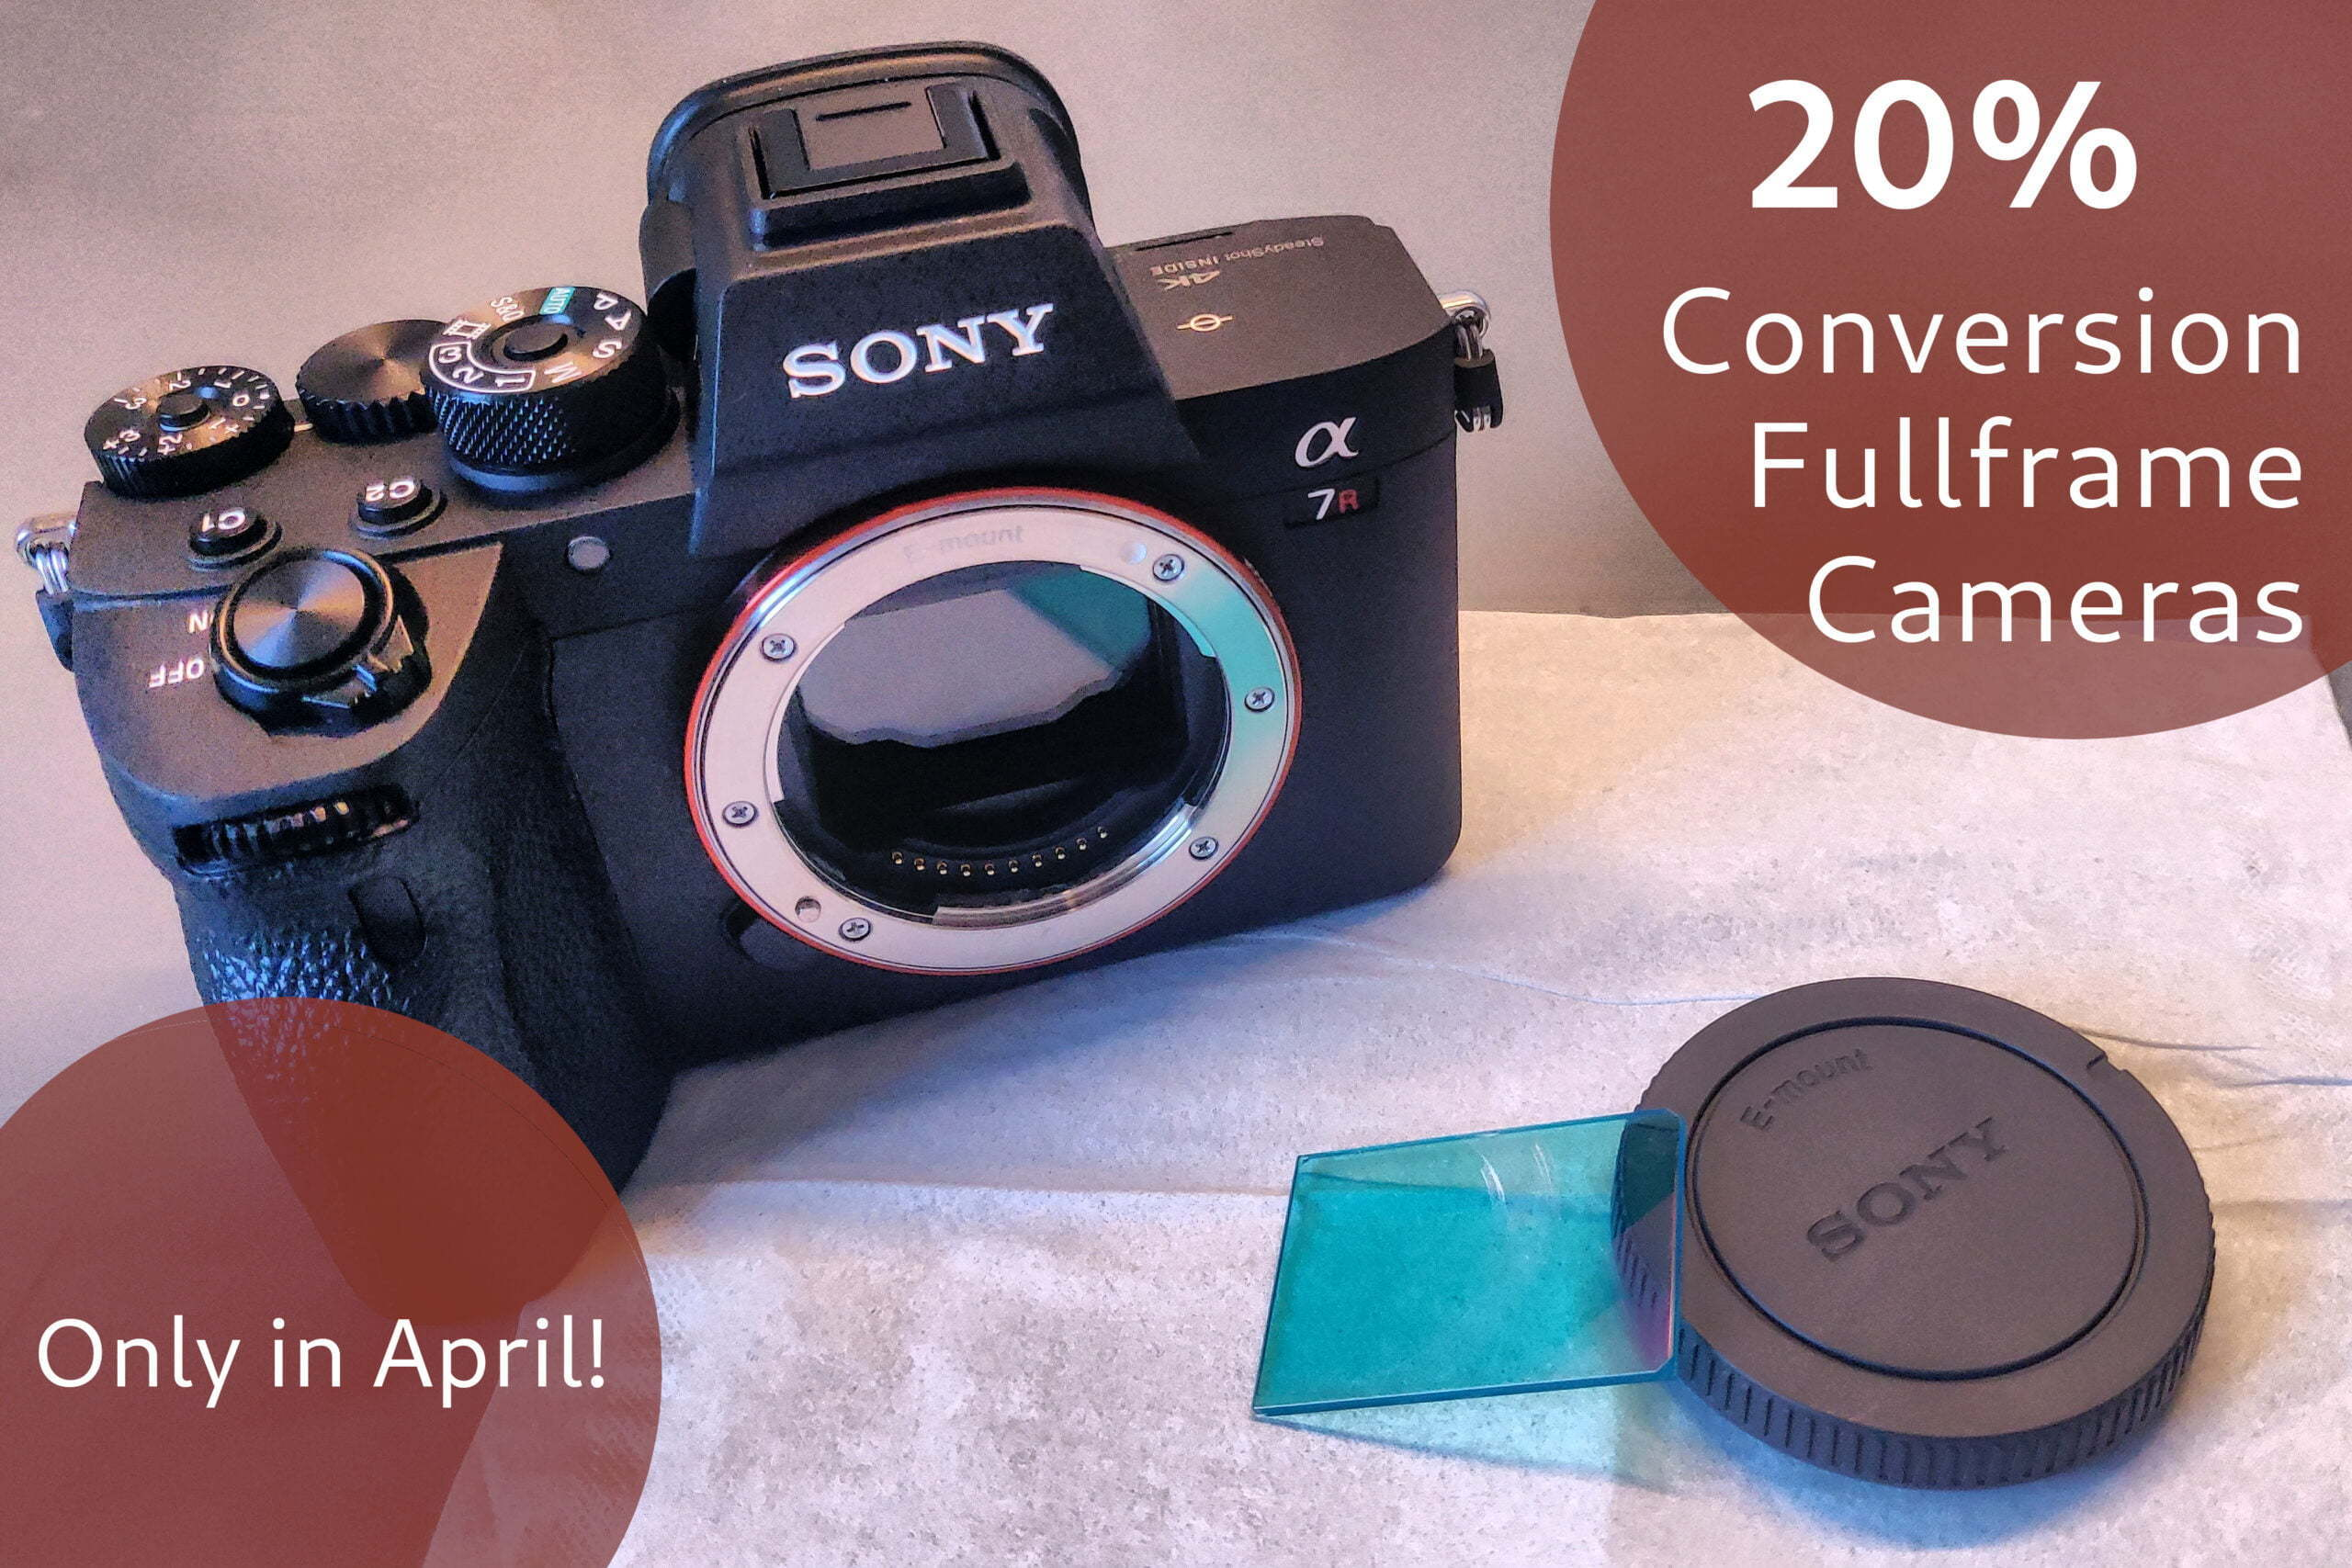 April Discount: 20% off the Conversion Service on all Full Frame Cameras